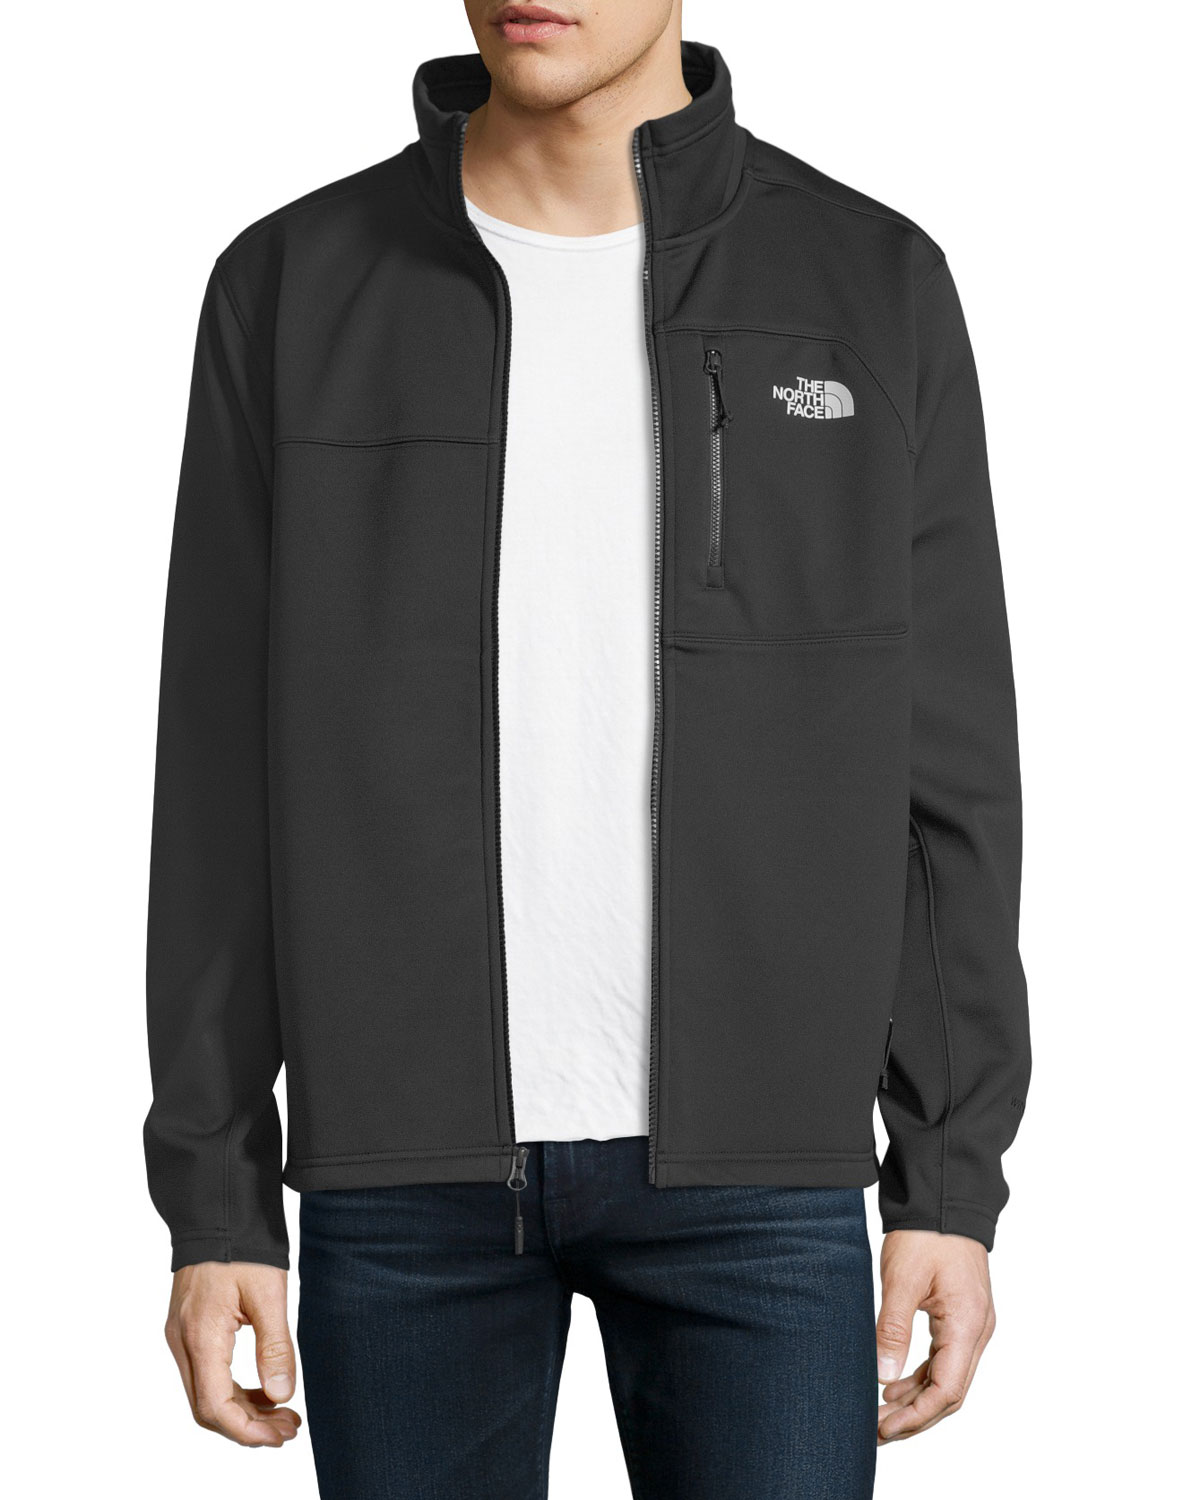 The North Face Apex Risor Jacket edcce9302